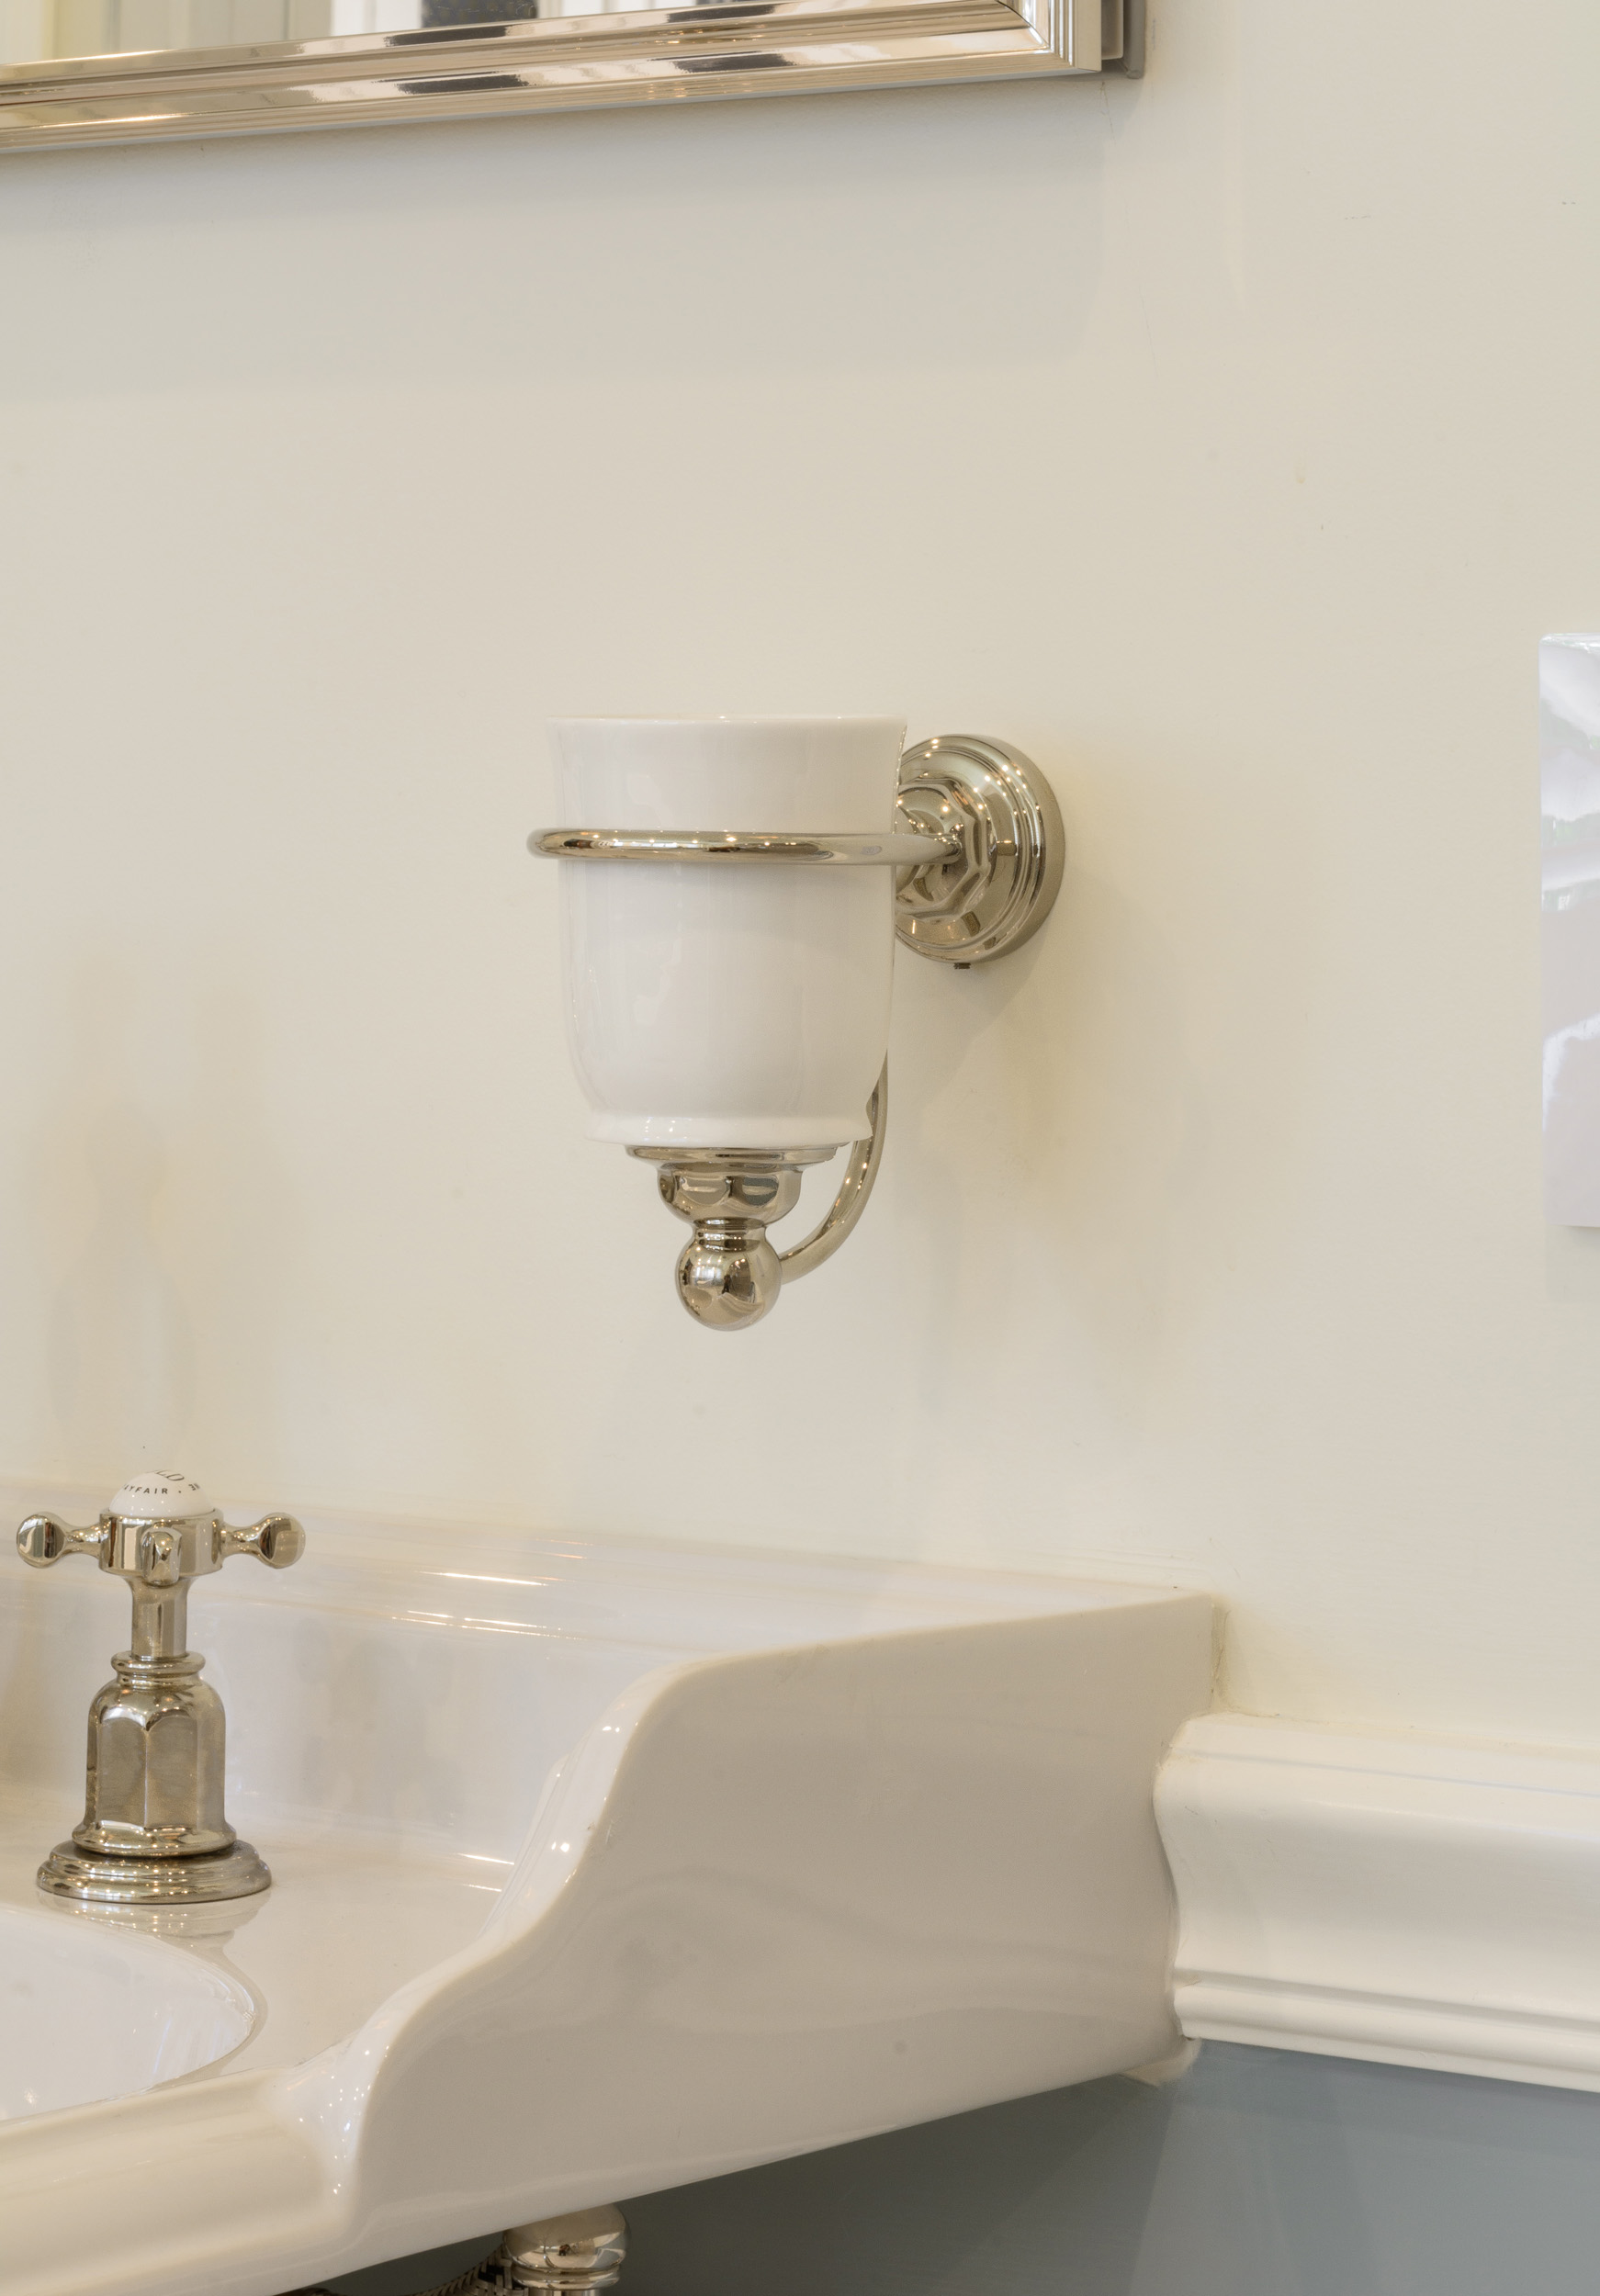 Polished nickel and white ceramic wall-mounted tumbler over console sink